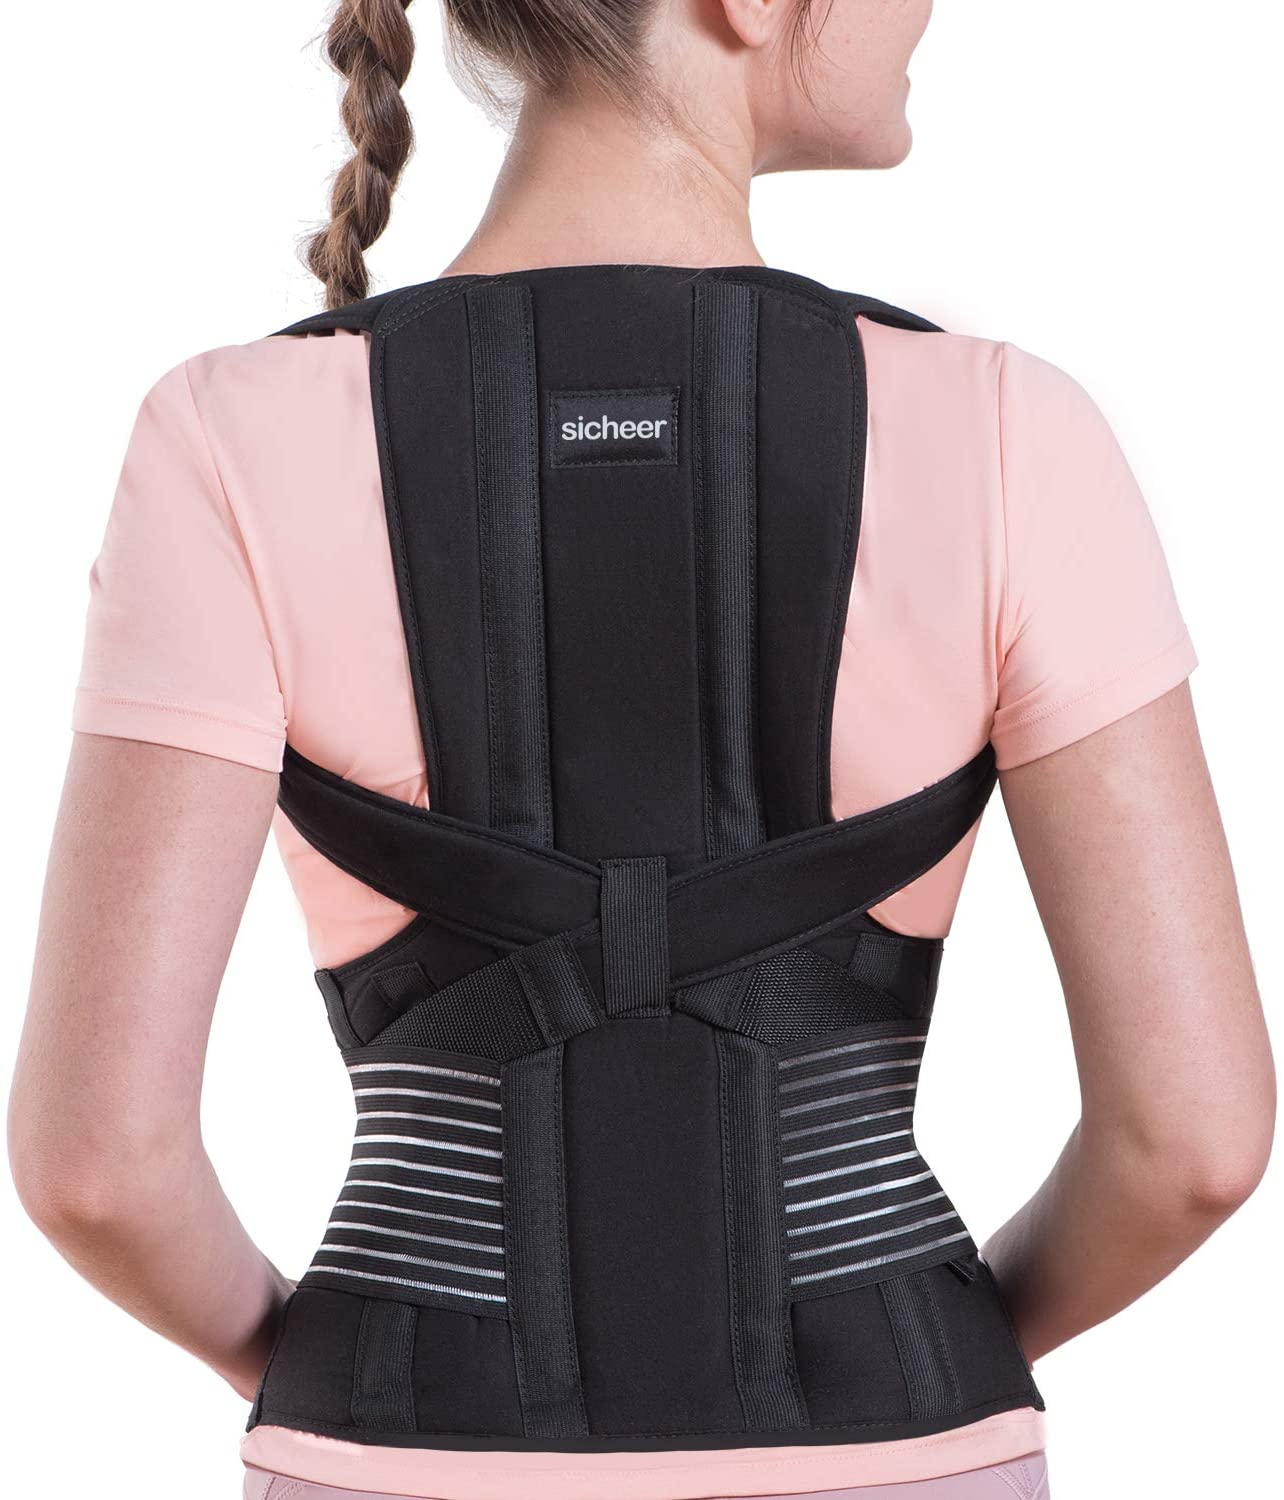 Posture Corrector for Women and Men Back Brace Straightener Shoulder Upright Support Trainer for Body Correction and Neck Pain Relief, Large, by Sicheer…